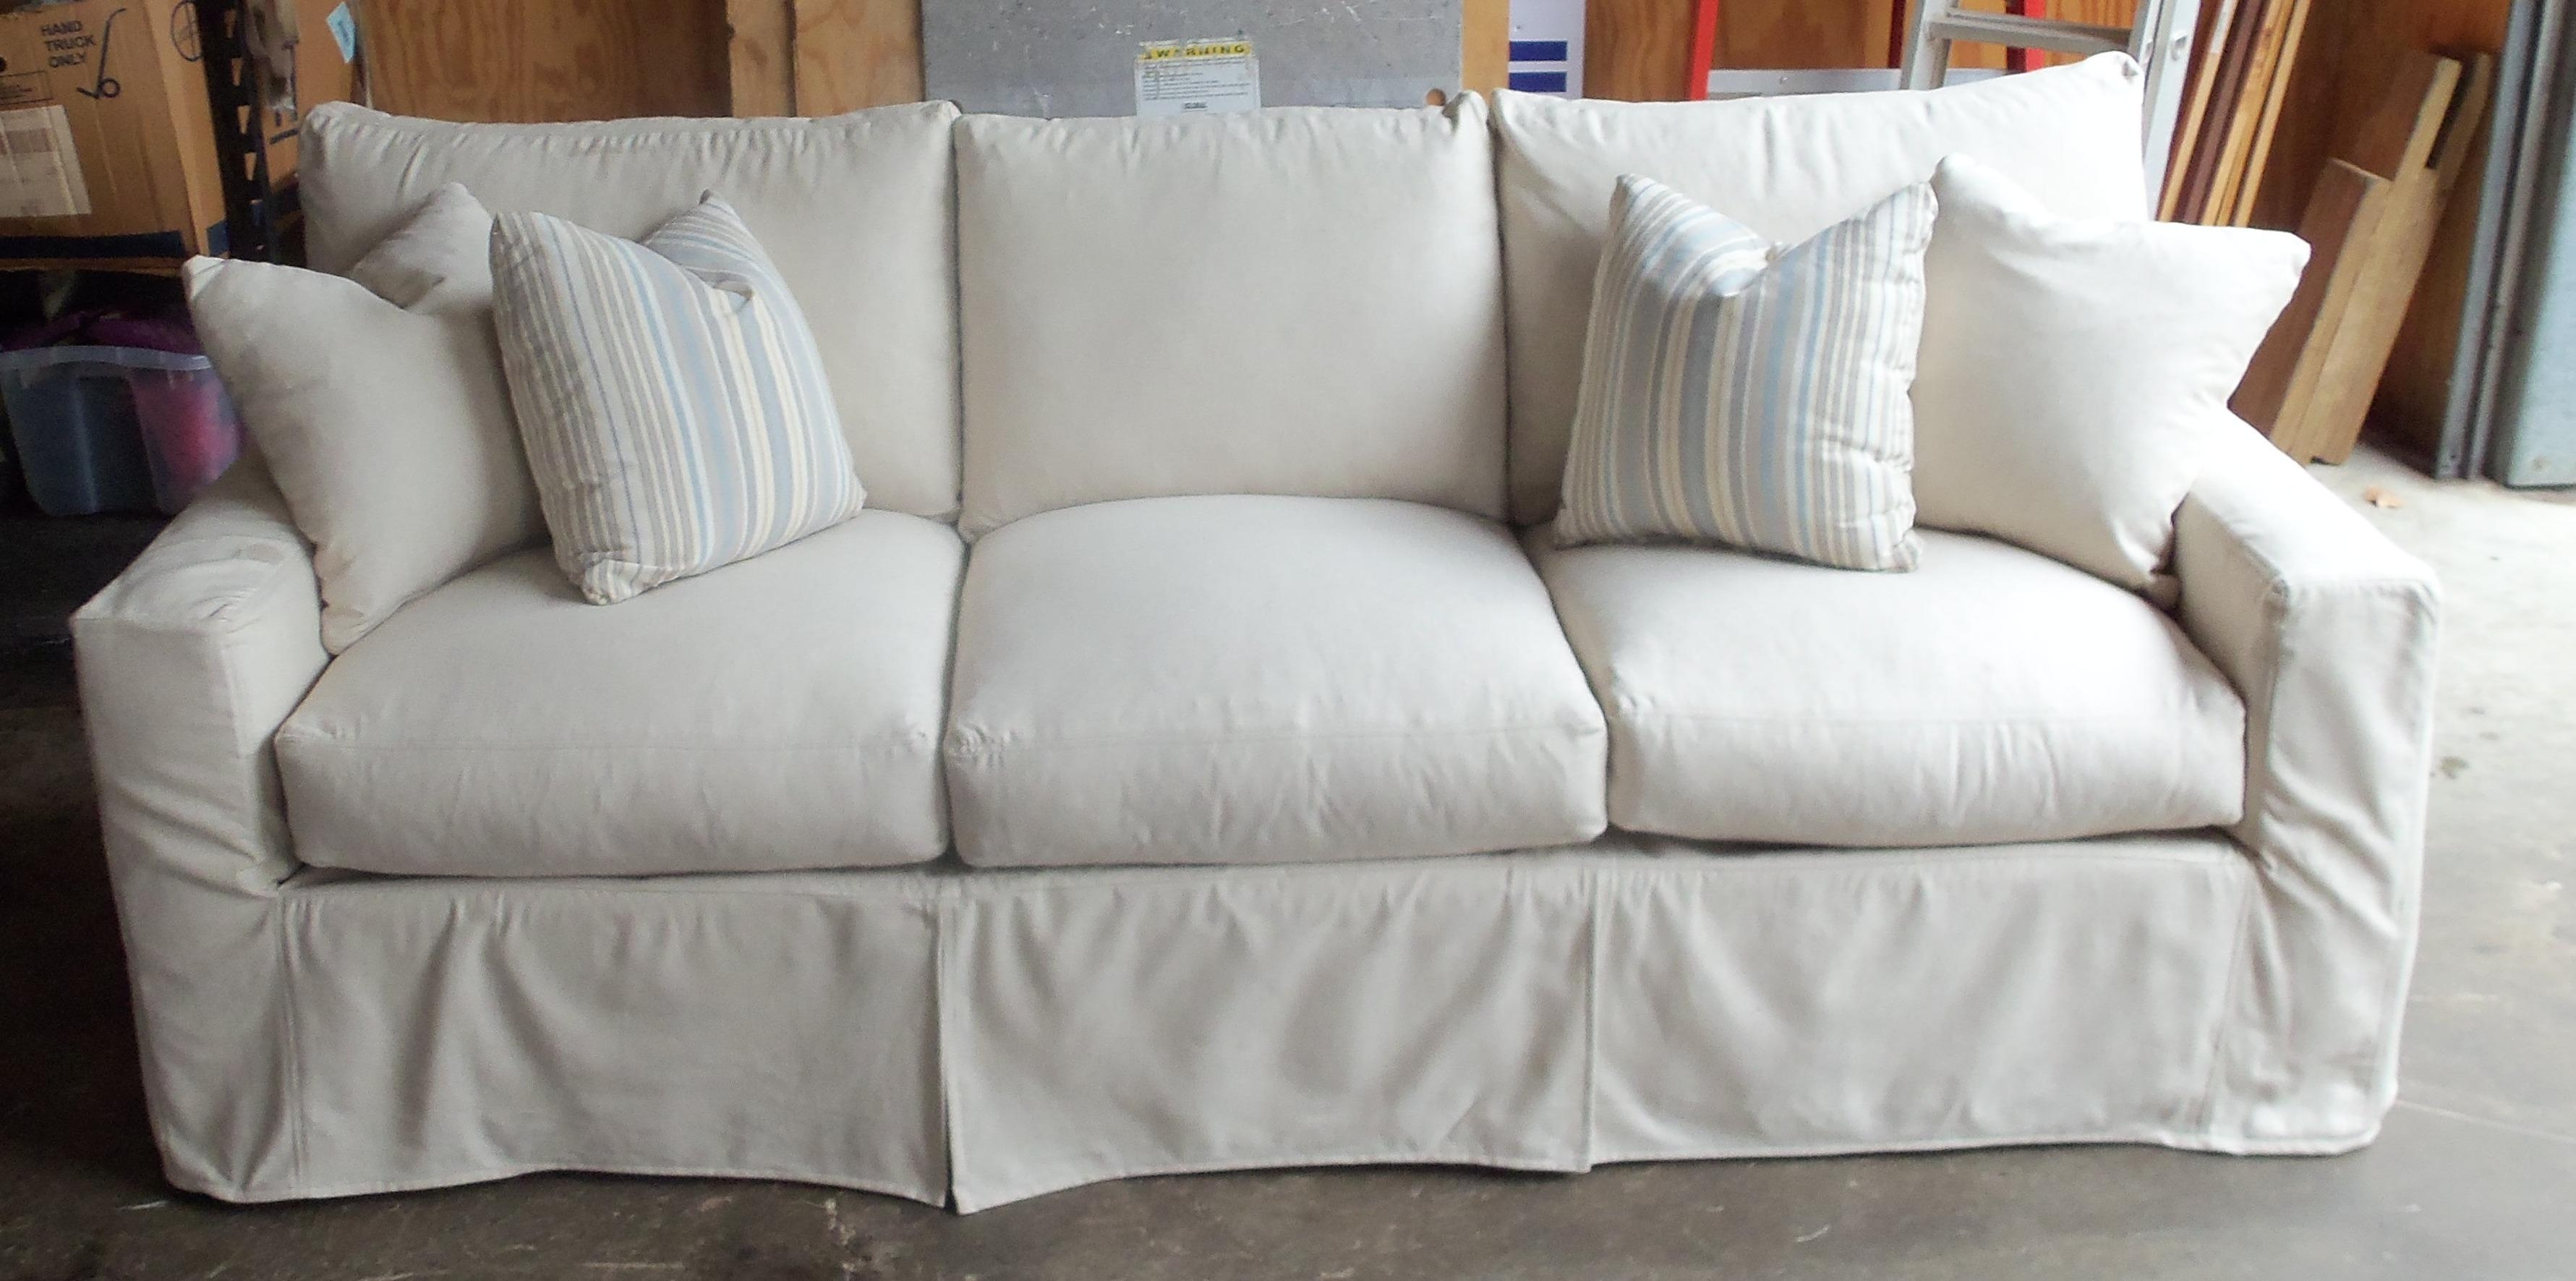 Sofas Center : White Slipcovers For Sofas With Cushions Cotton And Throughout Canvas Slipcover Sofas (Image 20 of 20)